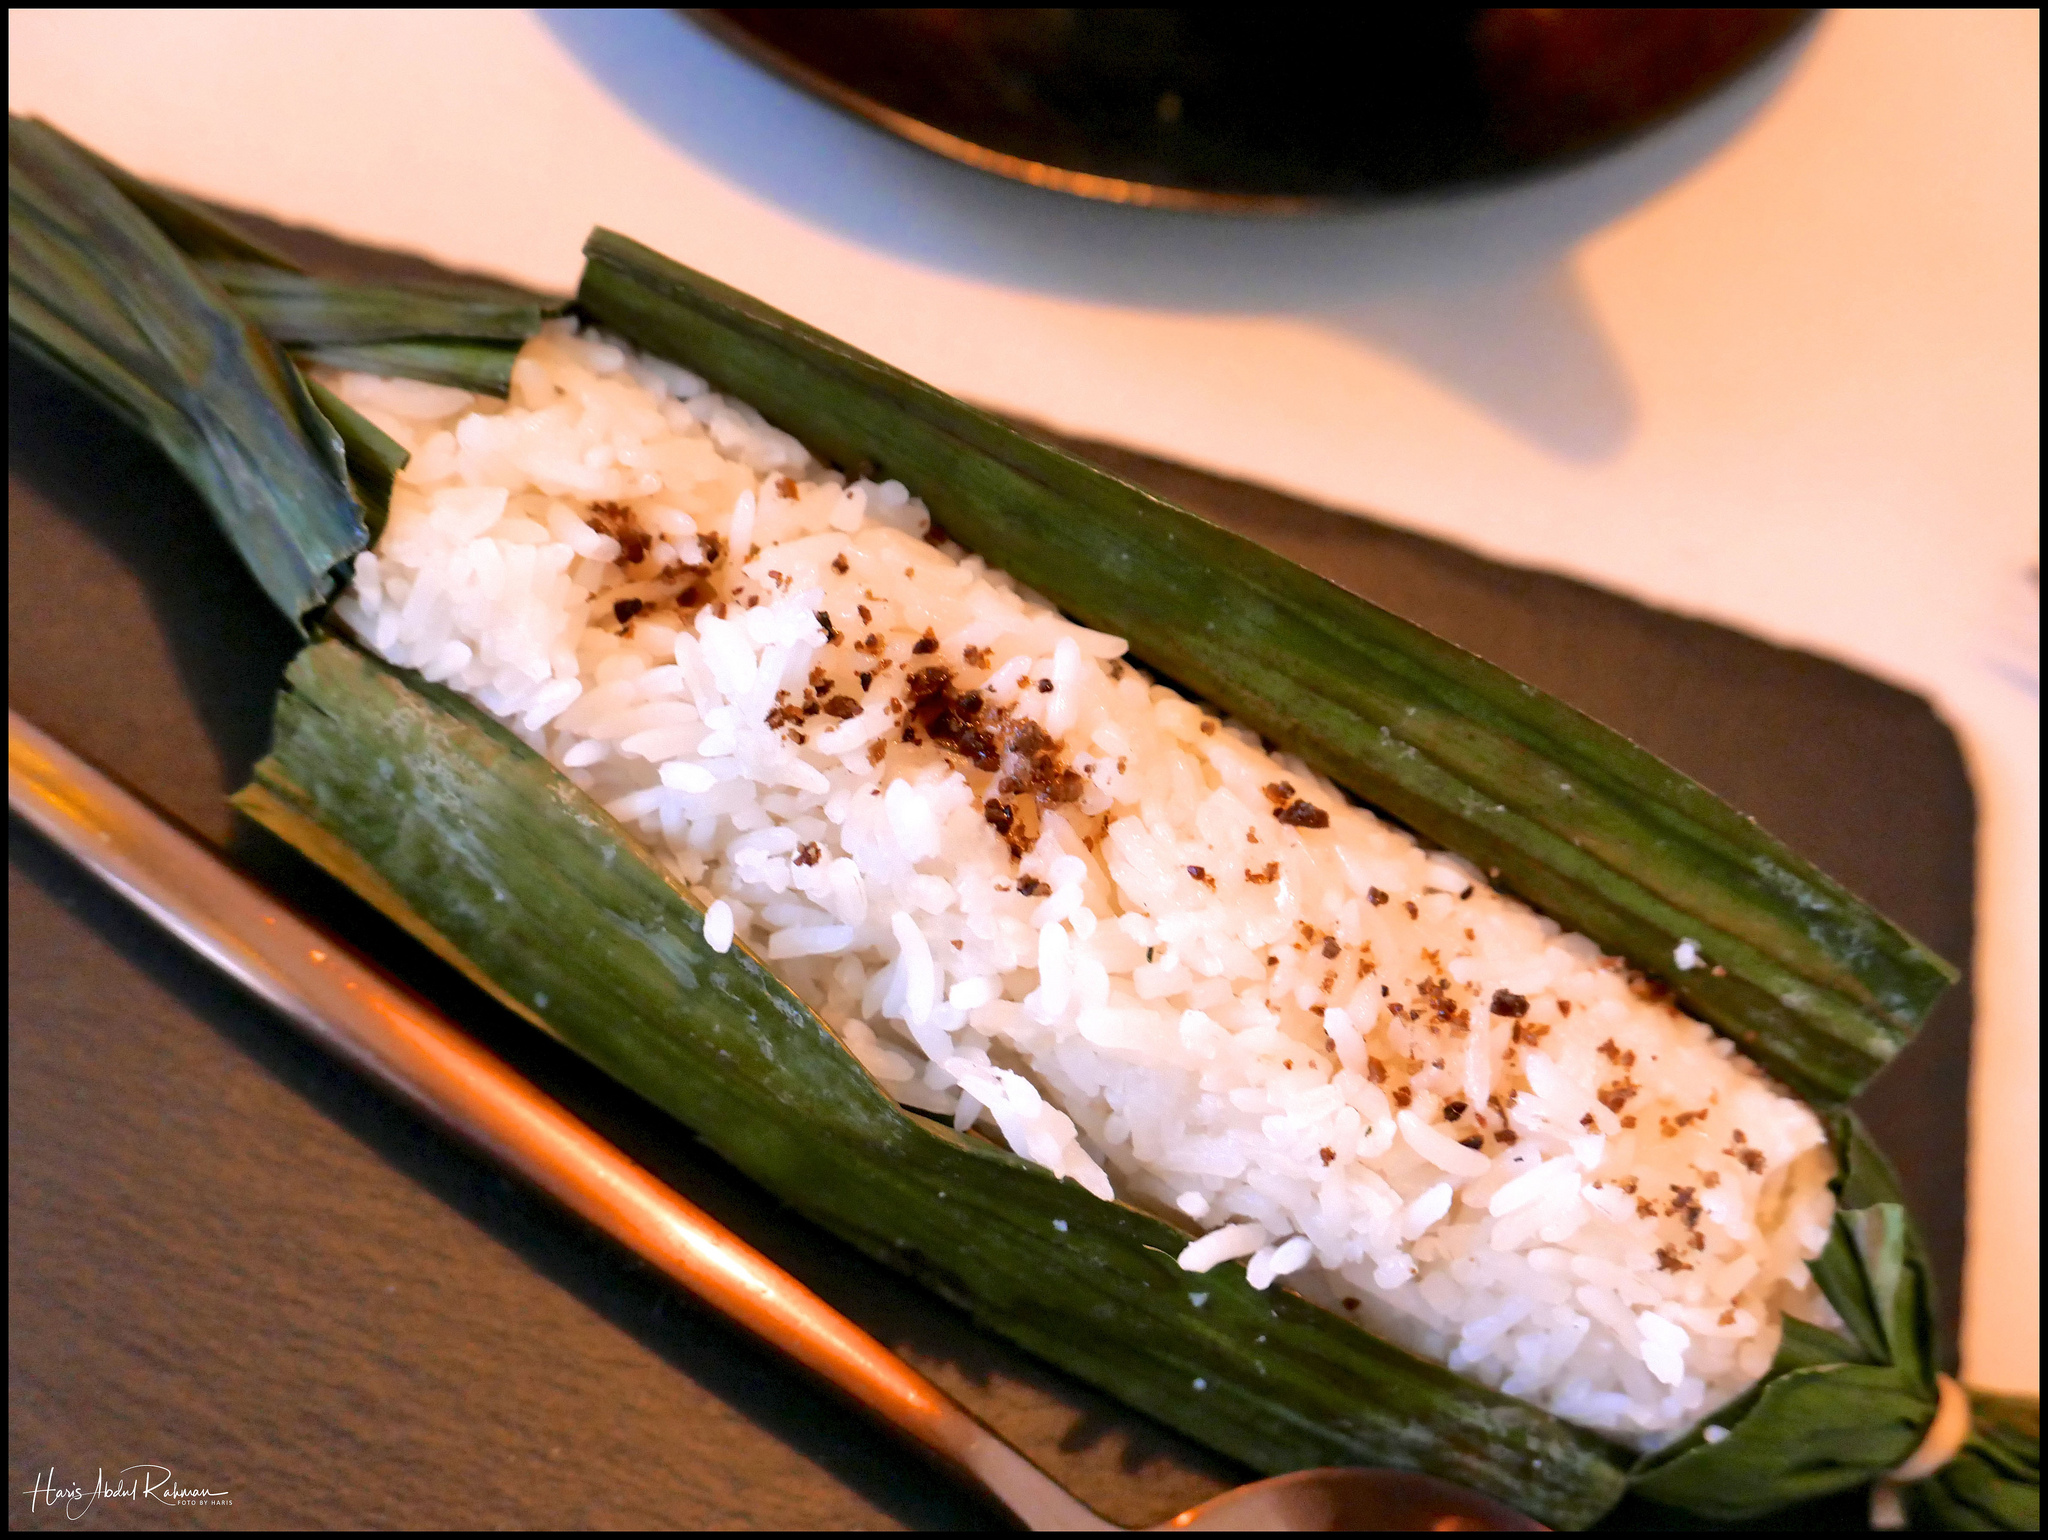 The rice was cooked in small batches …